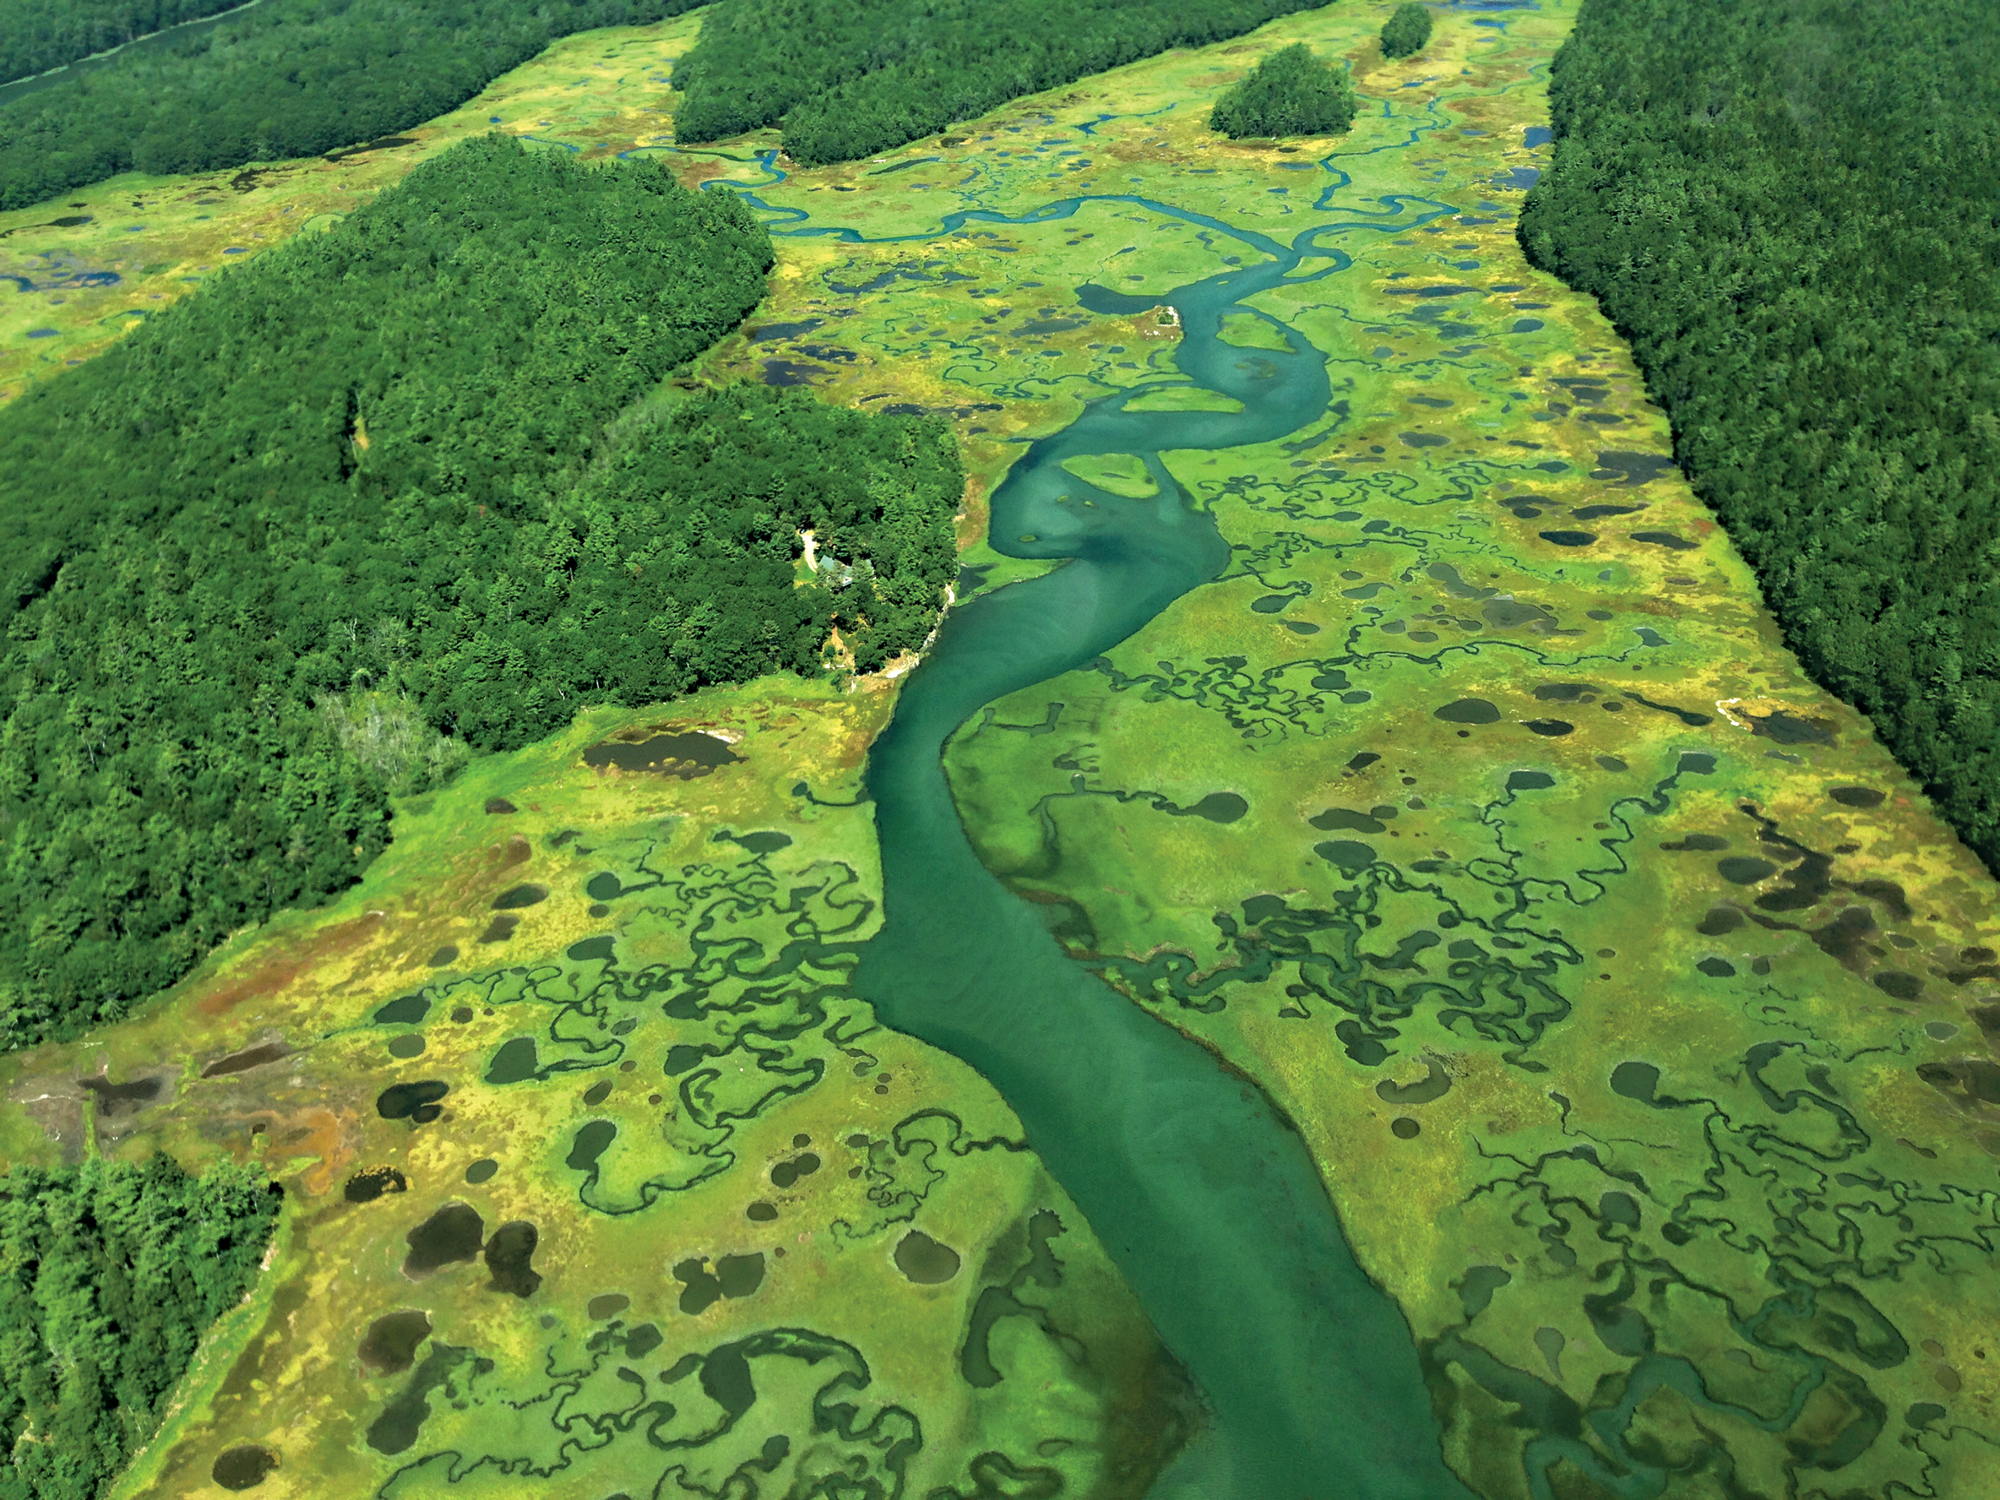 kdb's Wilderland project grew to include aerial surveys of the region, which contains more than 20 percent of Maine's tidal marshes.